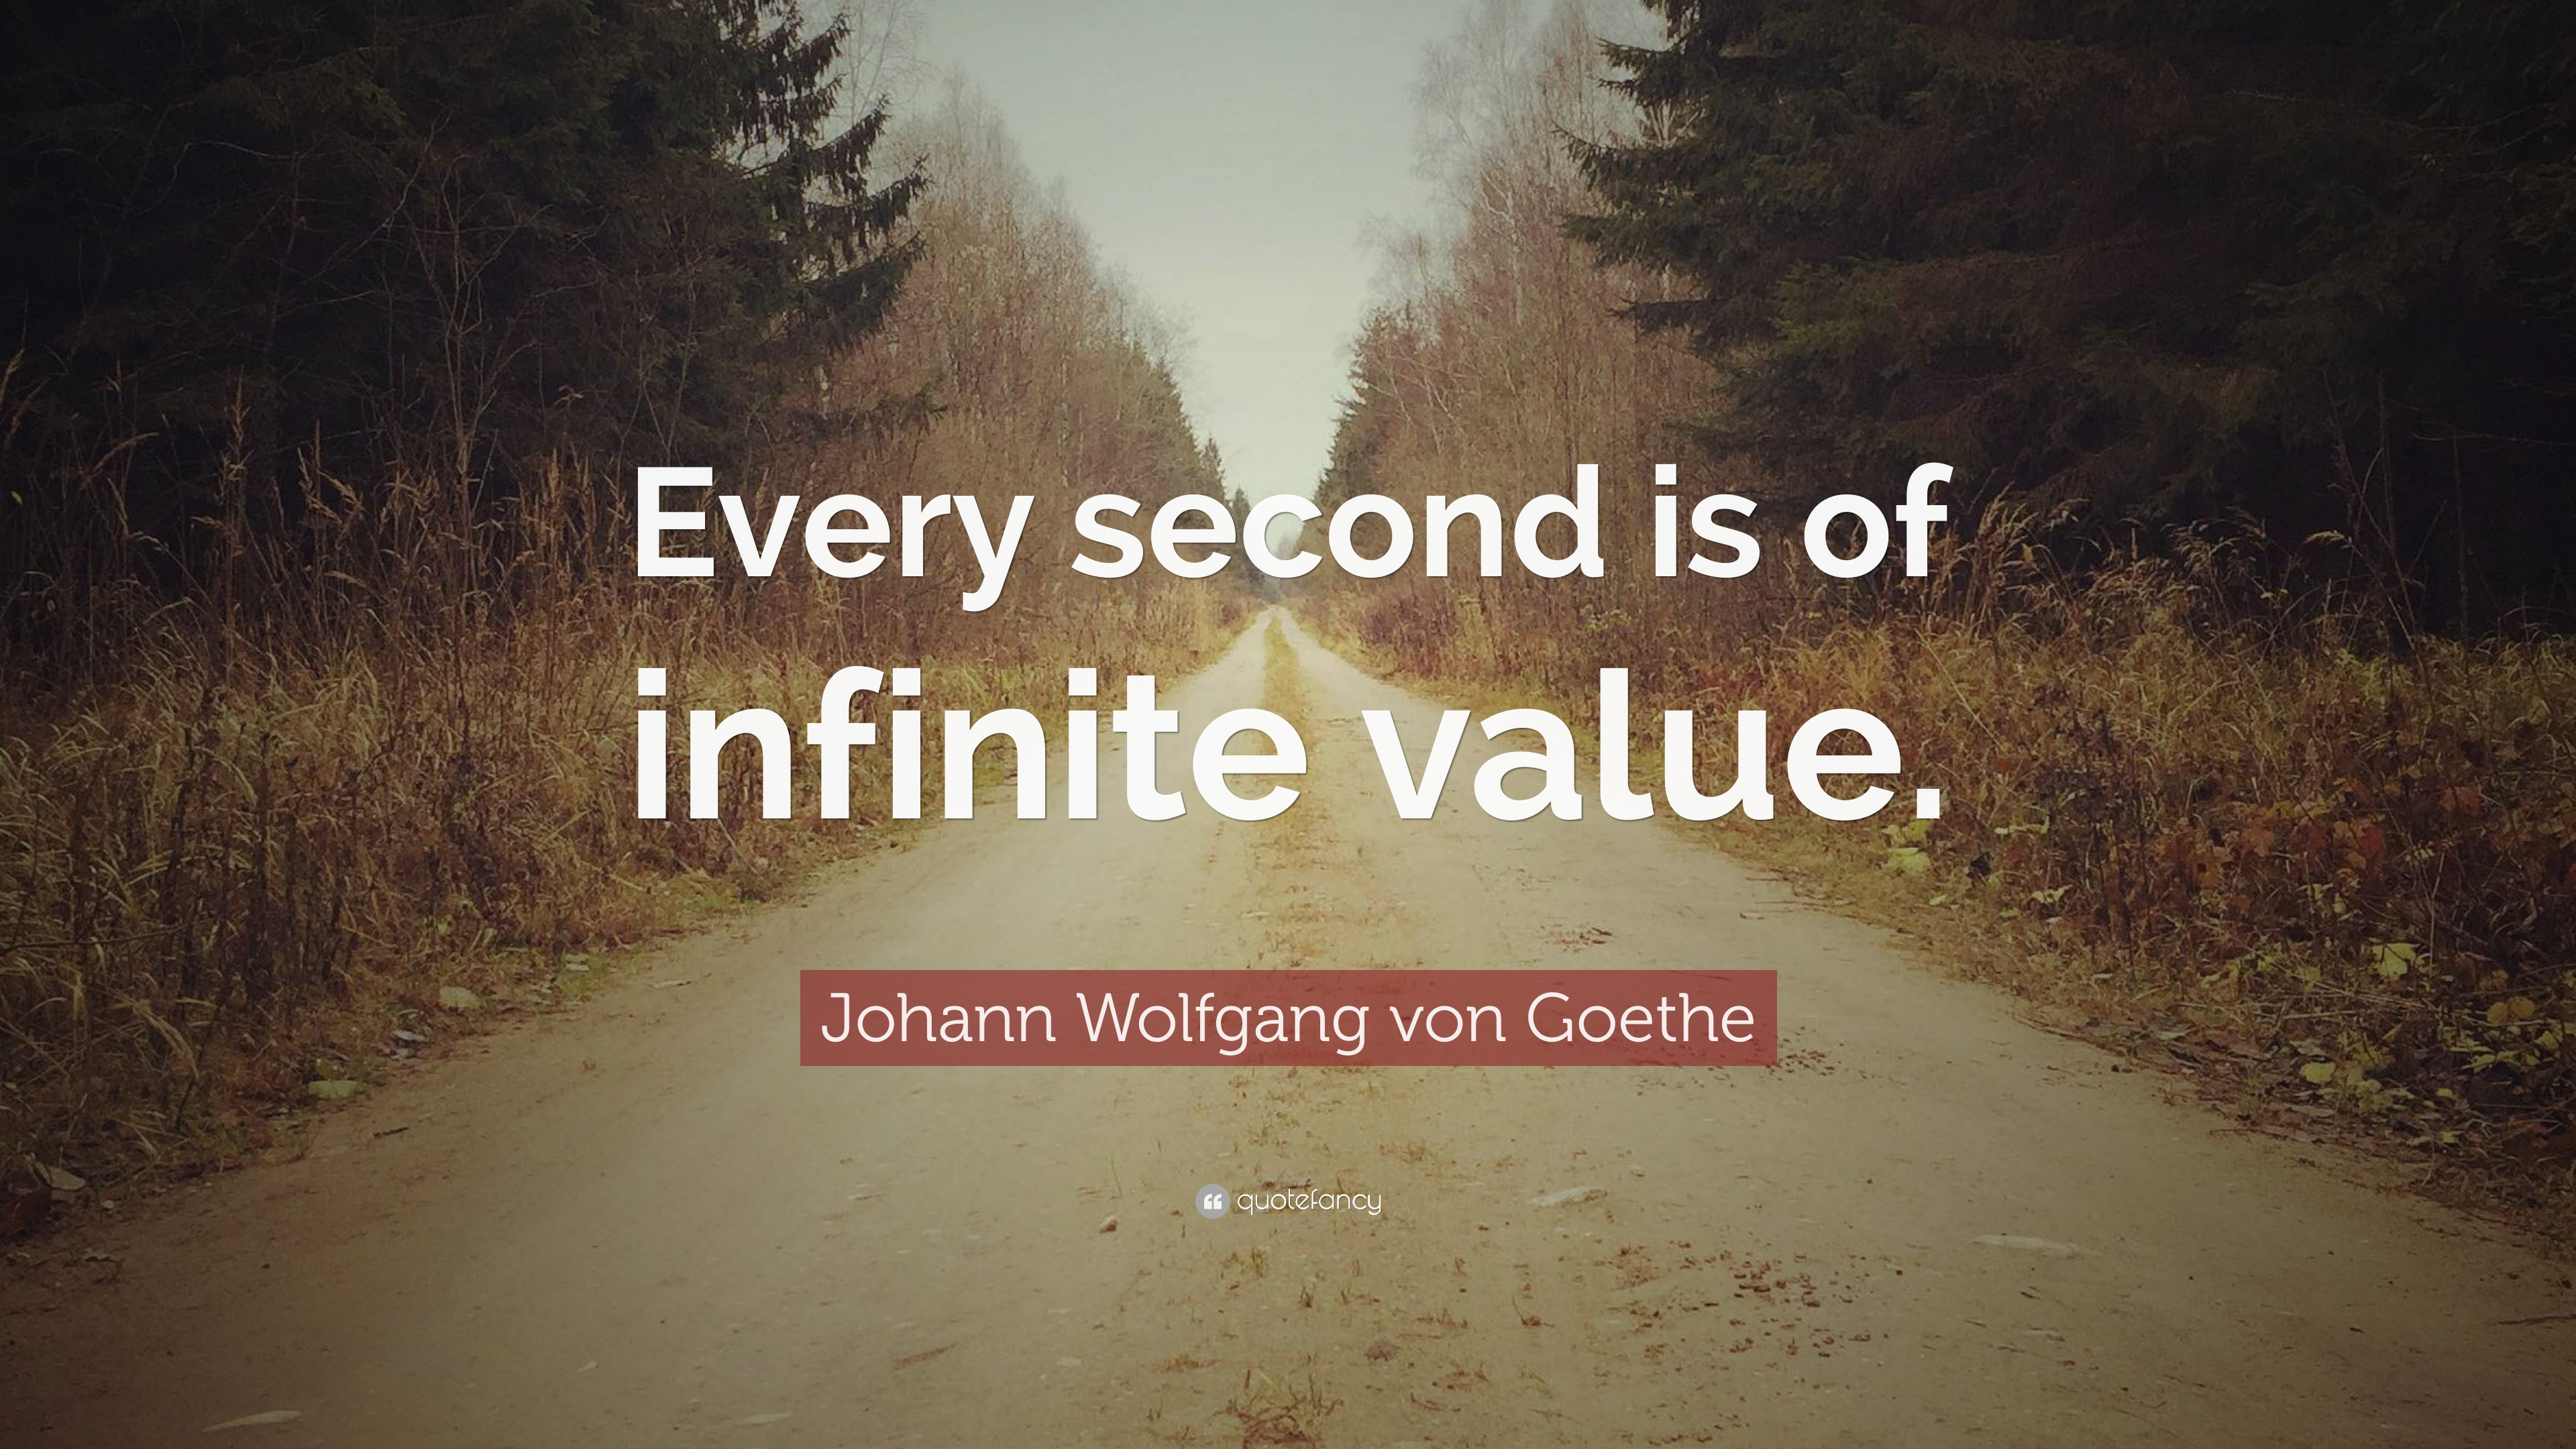 Johann Wolfgang Von Goethe Quote Every Second Is Of Infinite Value